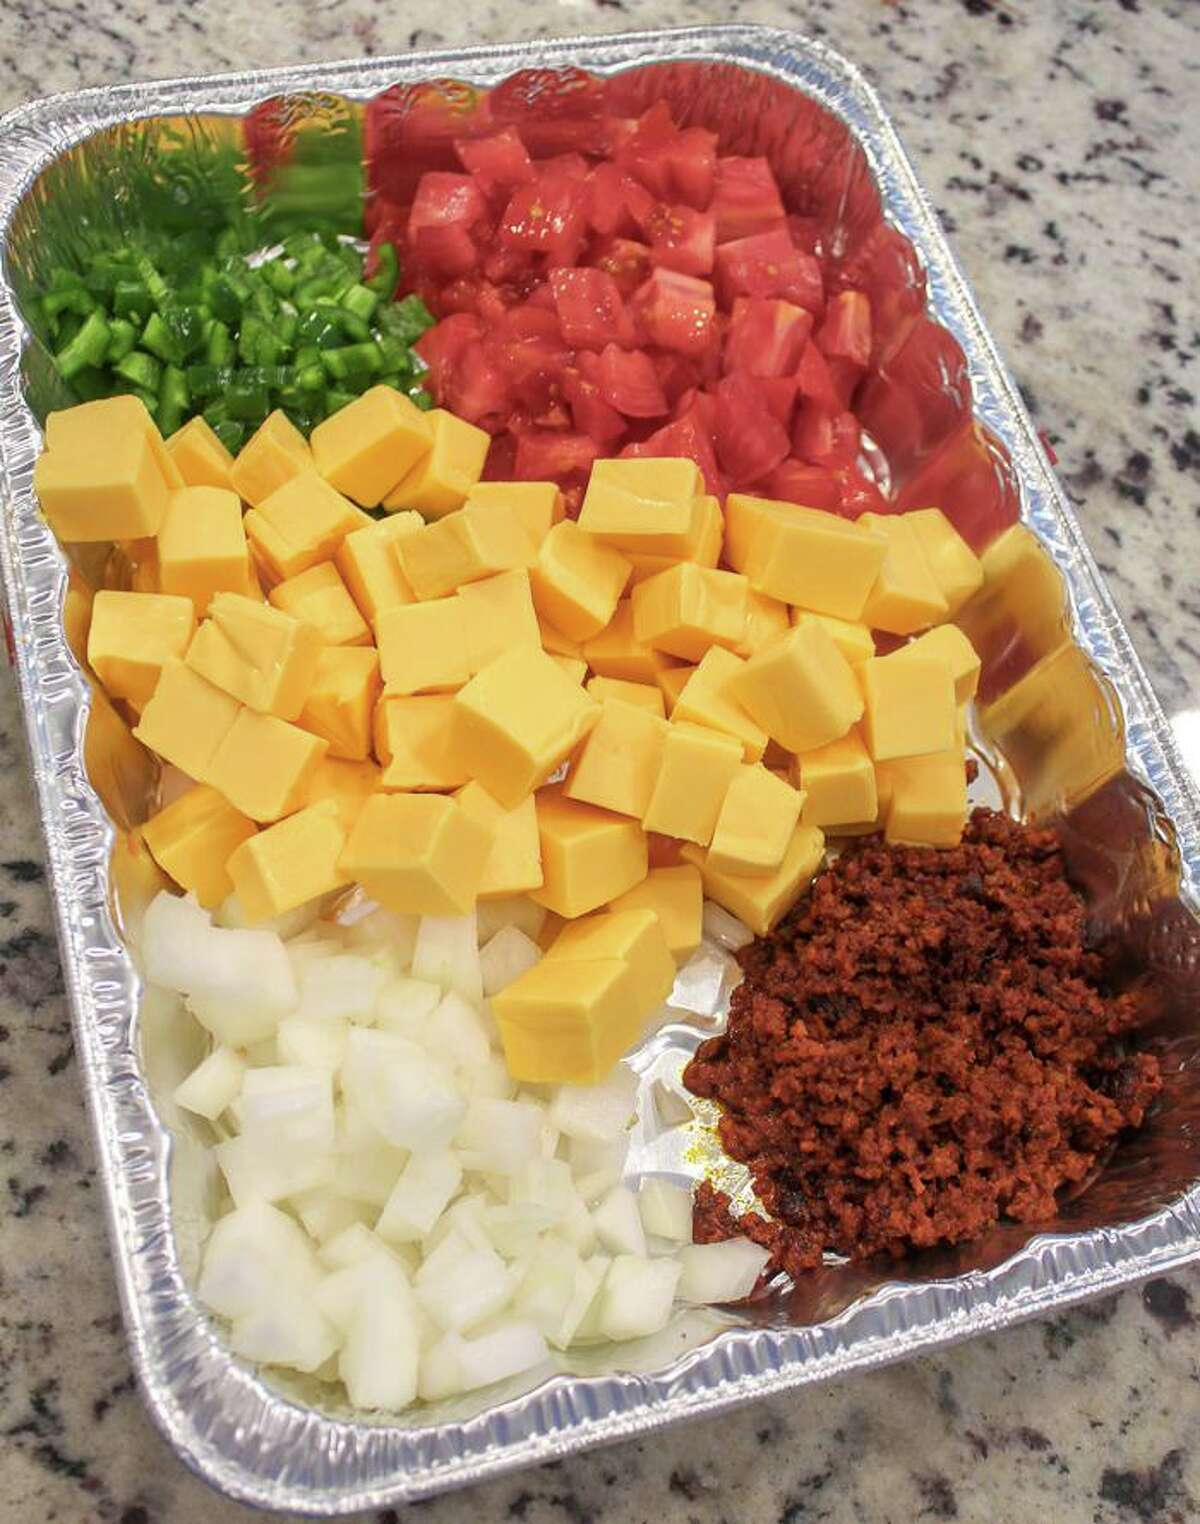 Texan foodies have latched on to the smoked queso trend, posting photos on Facebook and Instagram of their cheese dips made on a smoker or outdoor grill.